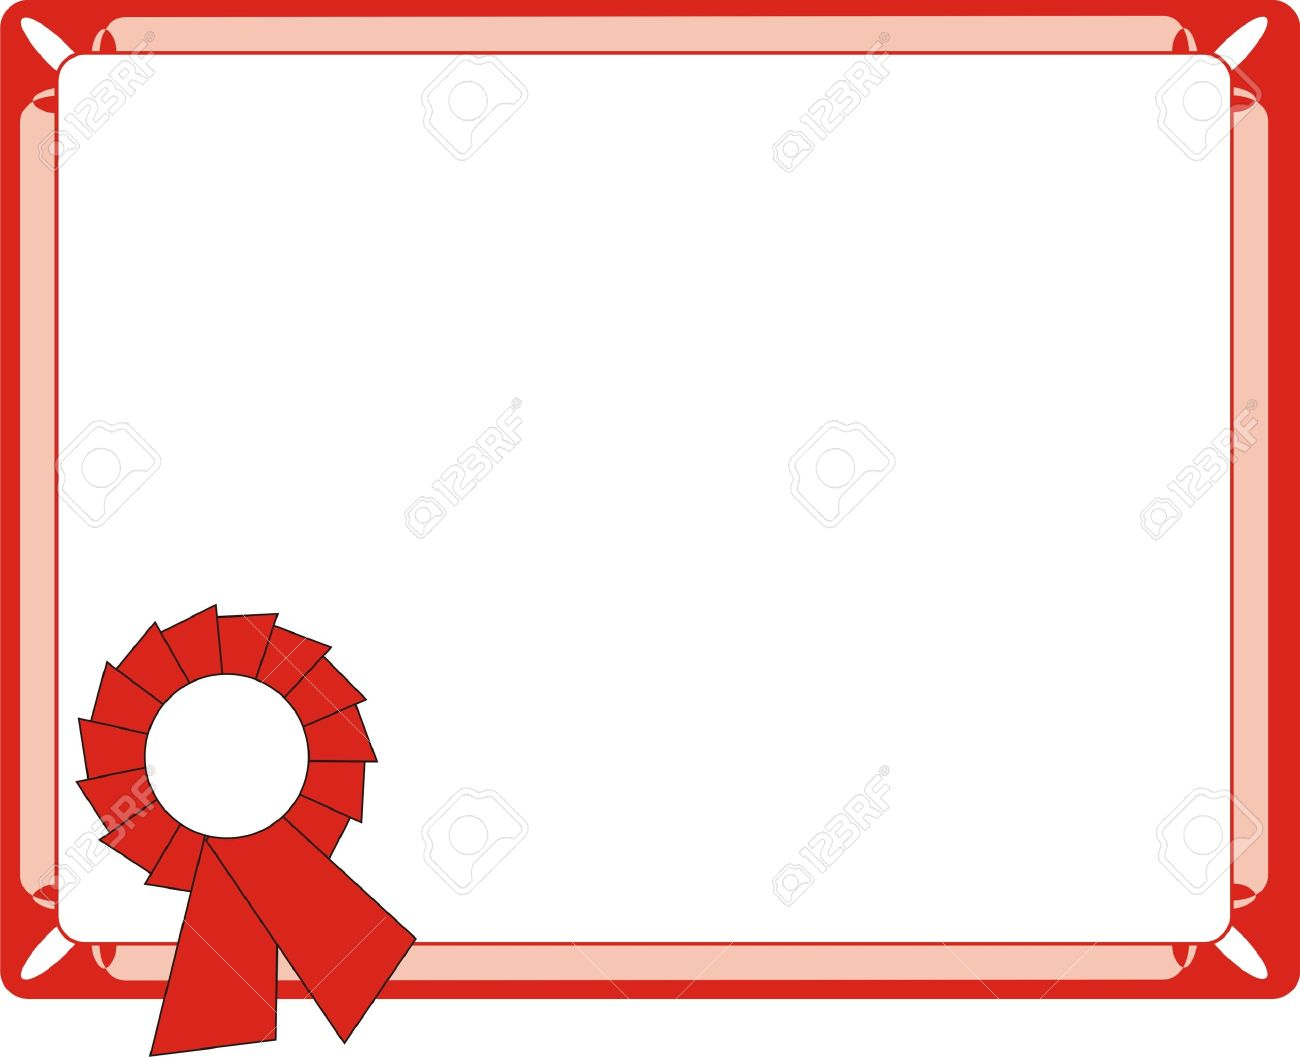 Blank red certificate on letter format royalty free cliparts blank red certificate on letter format stock vector 2102345 xflitez Image collections